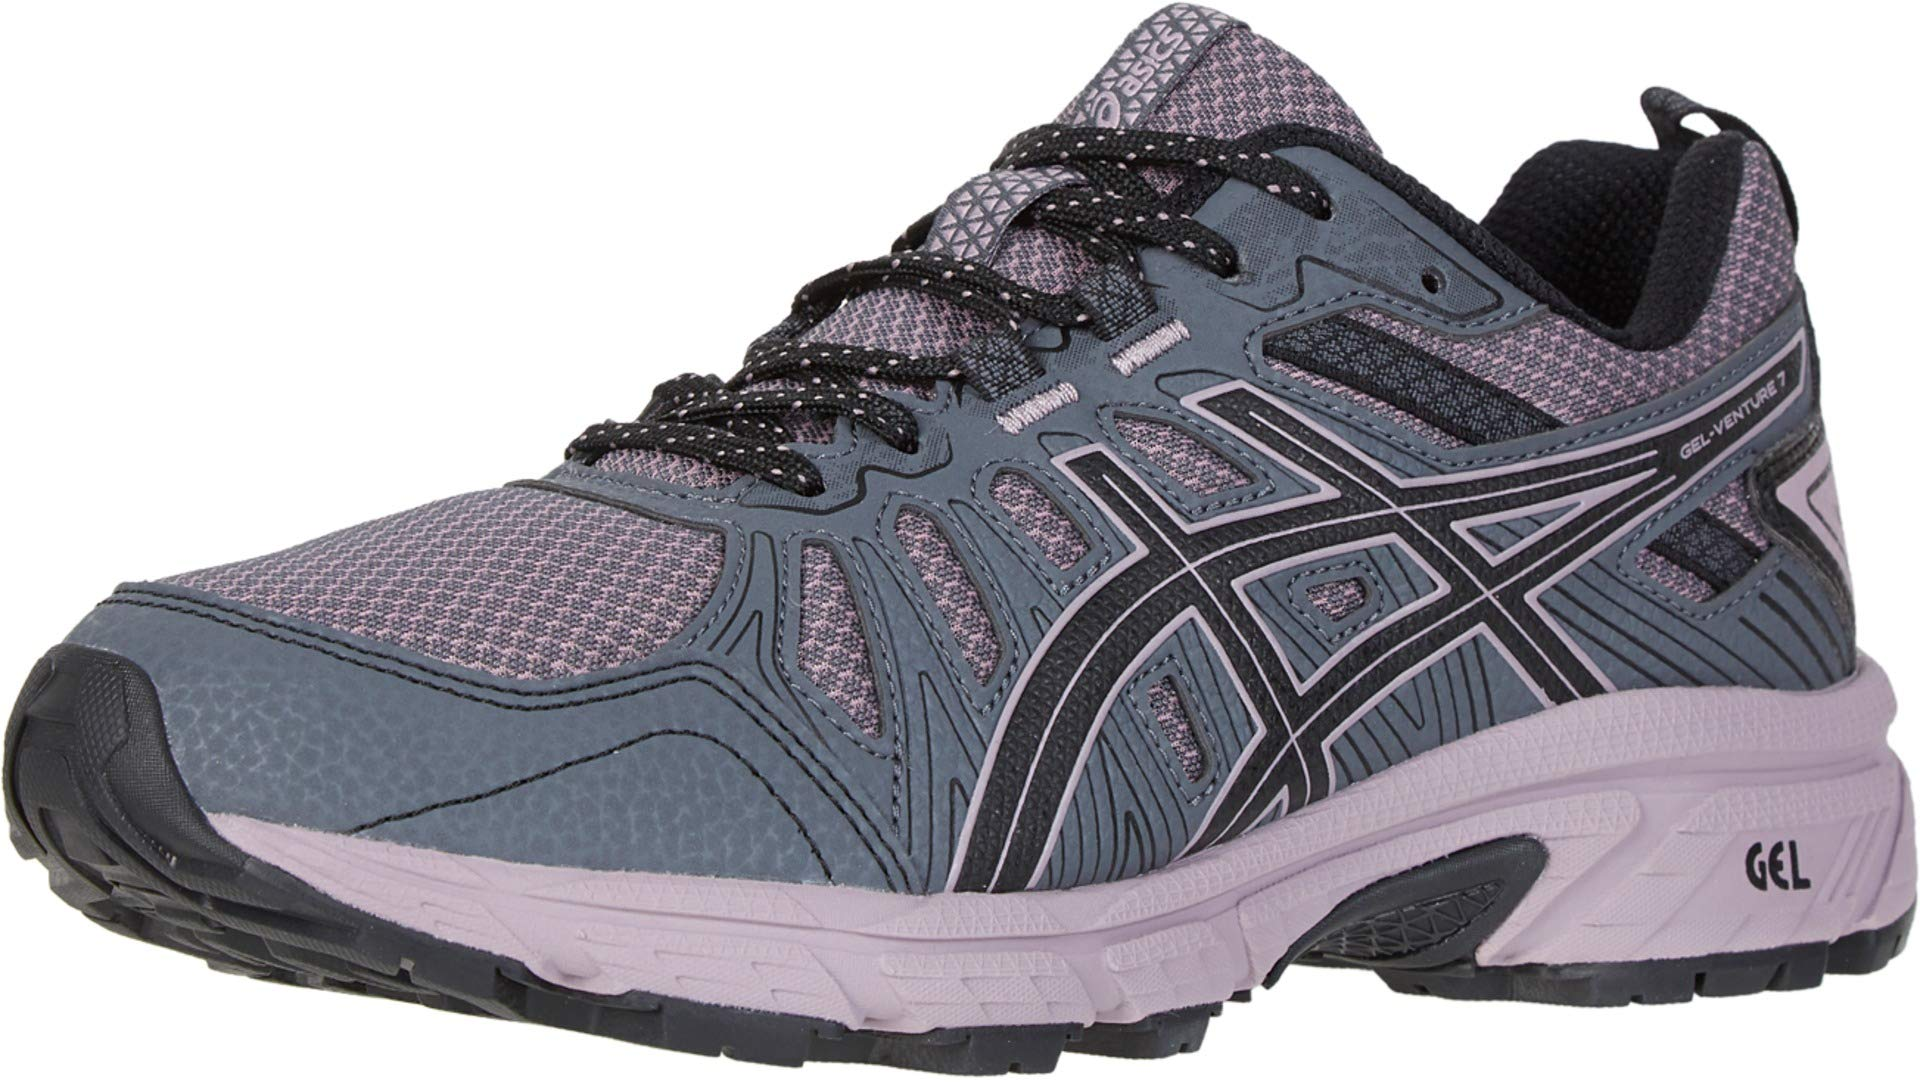 ASICS Women's Gel-Venture 7 Running Shoes, 5.5M, Carrier Grey/Violet Blush by ASICS